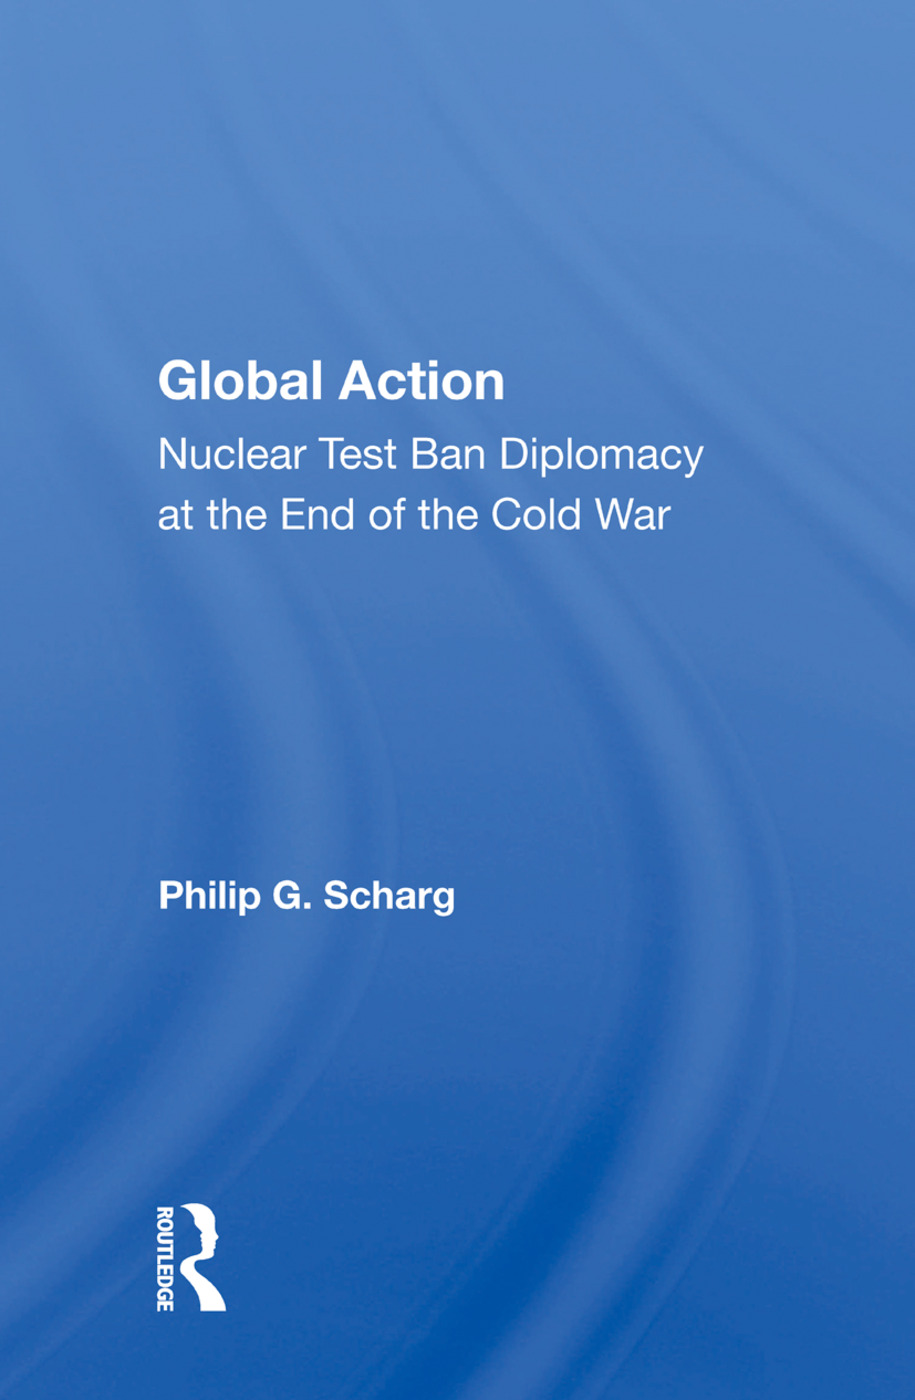 Global Action: Nuclear Test Ban Diplomacy at the End of the Cold War book cover